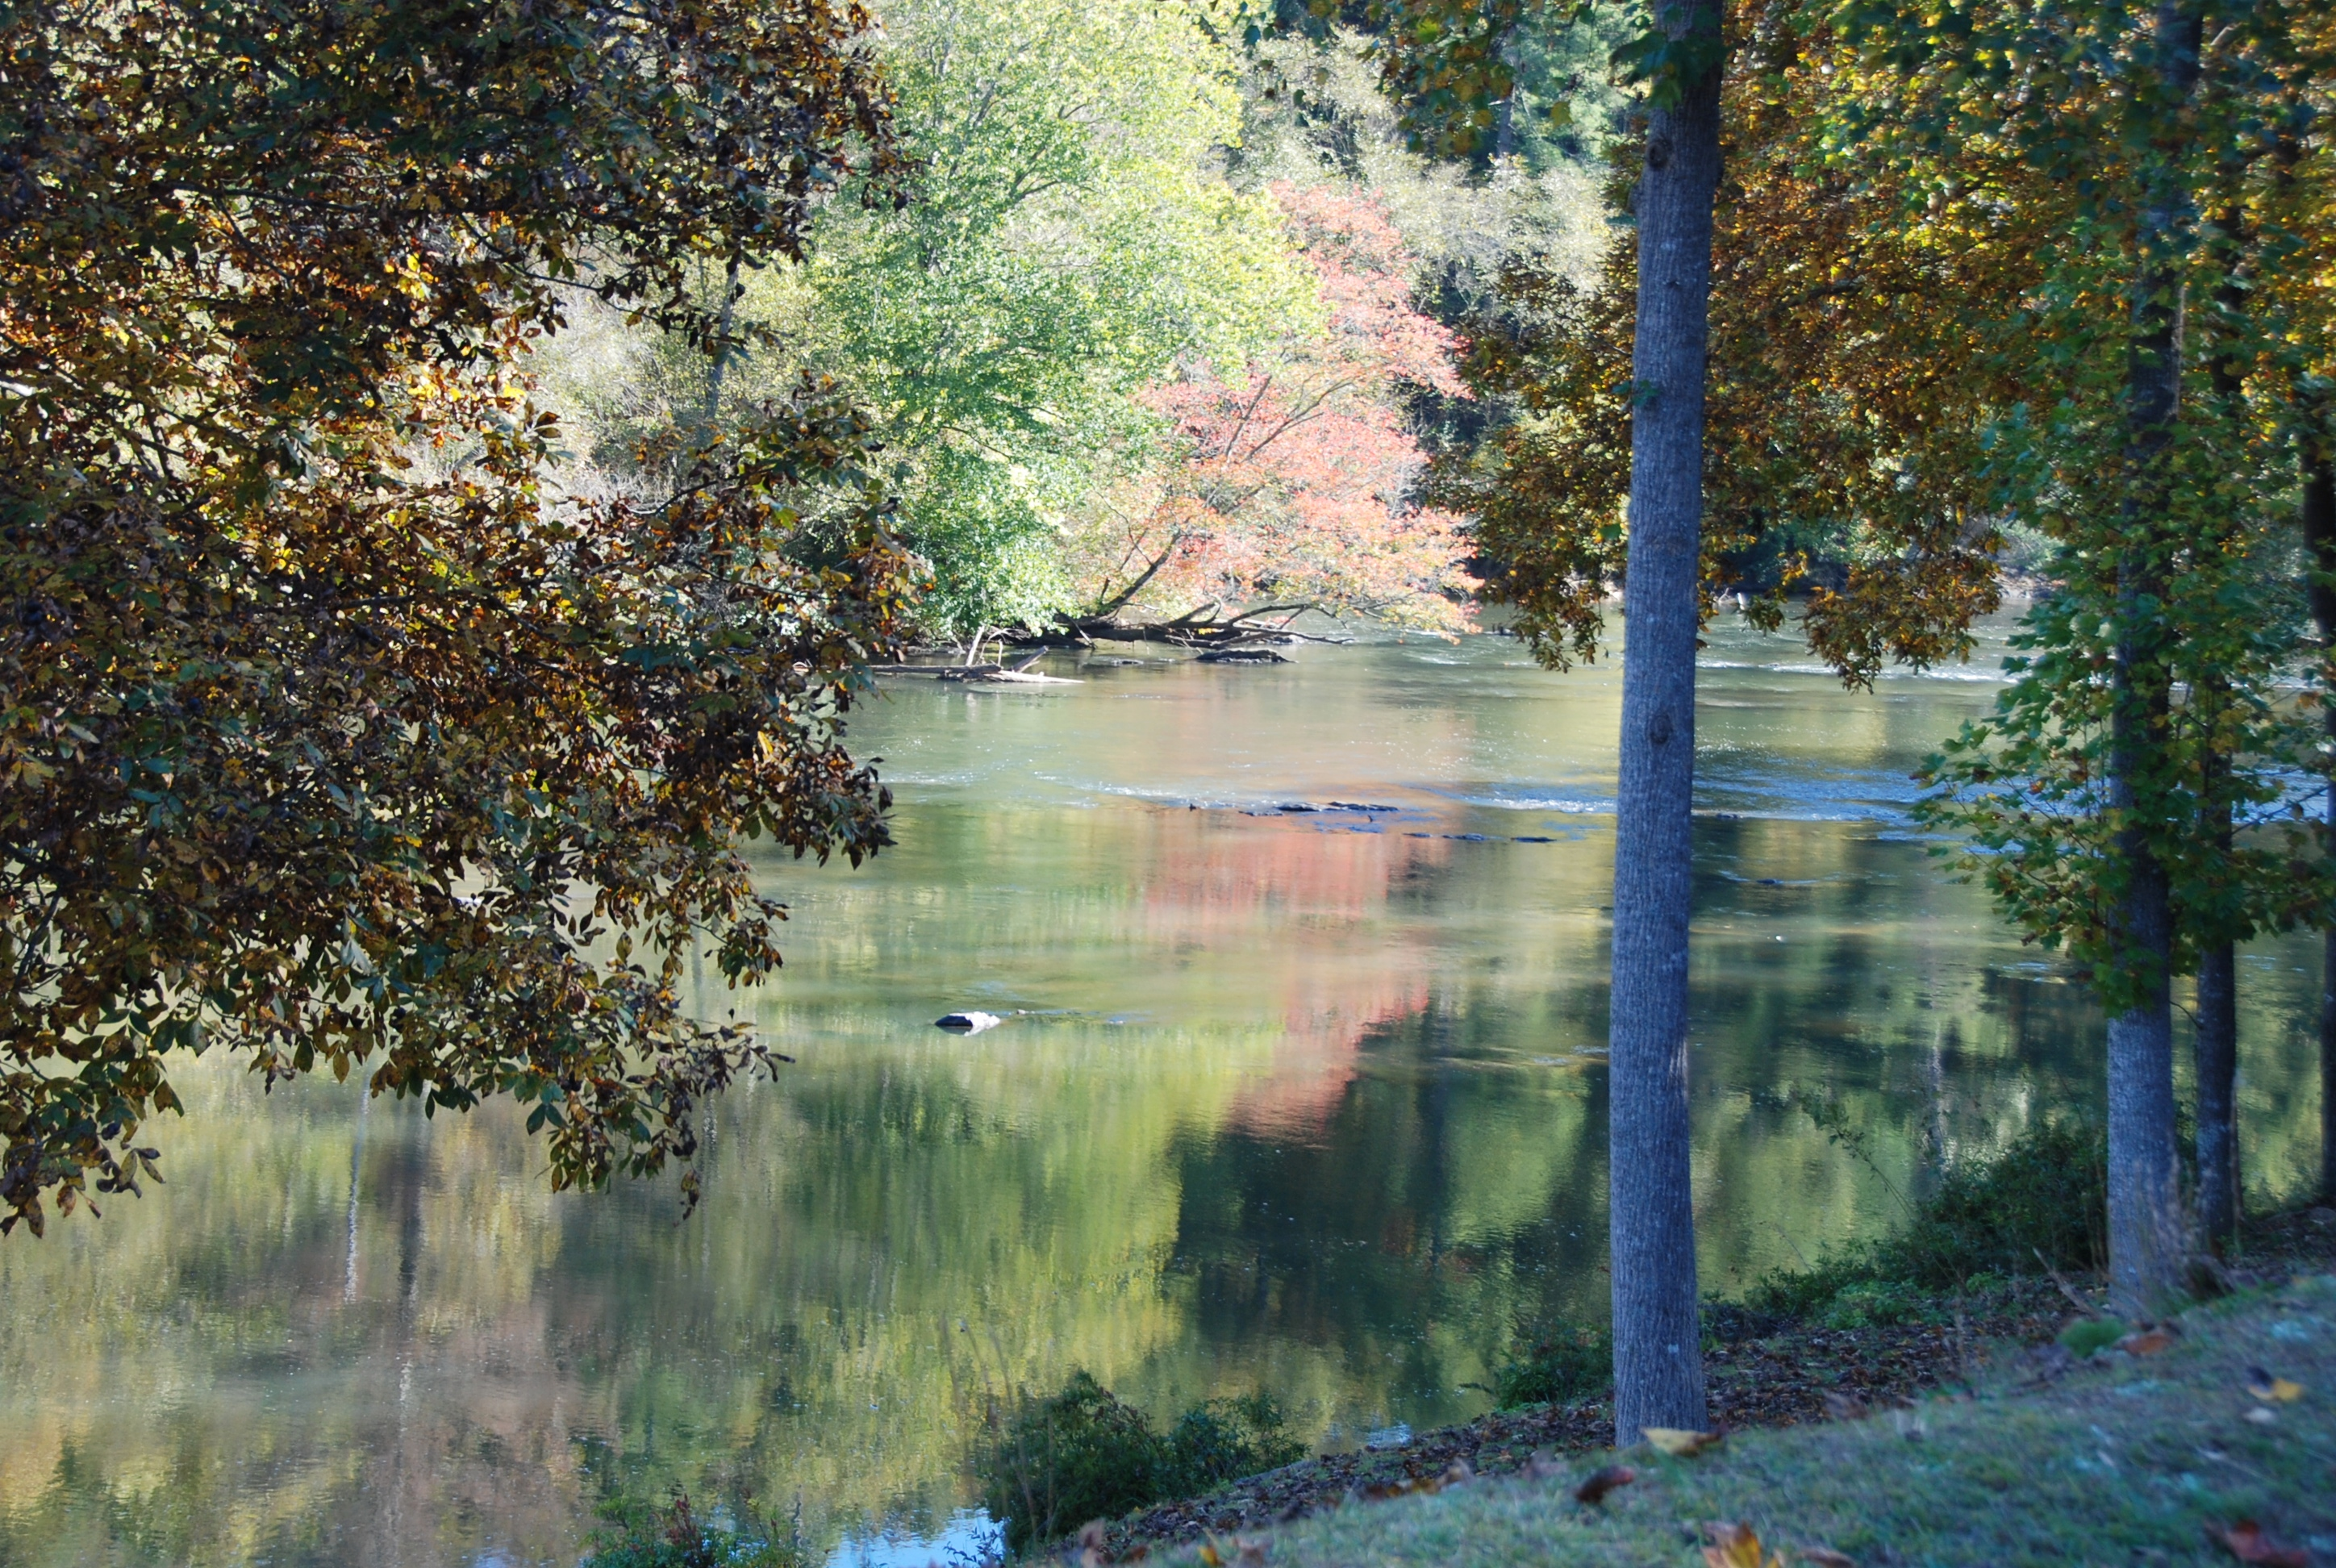 Chattahoochee River at River Park